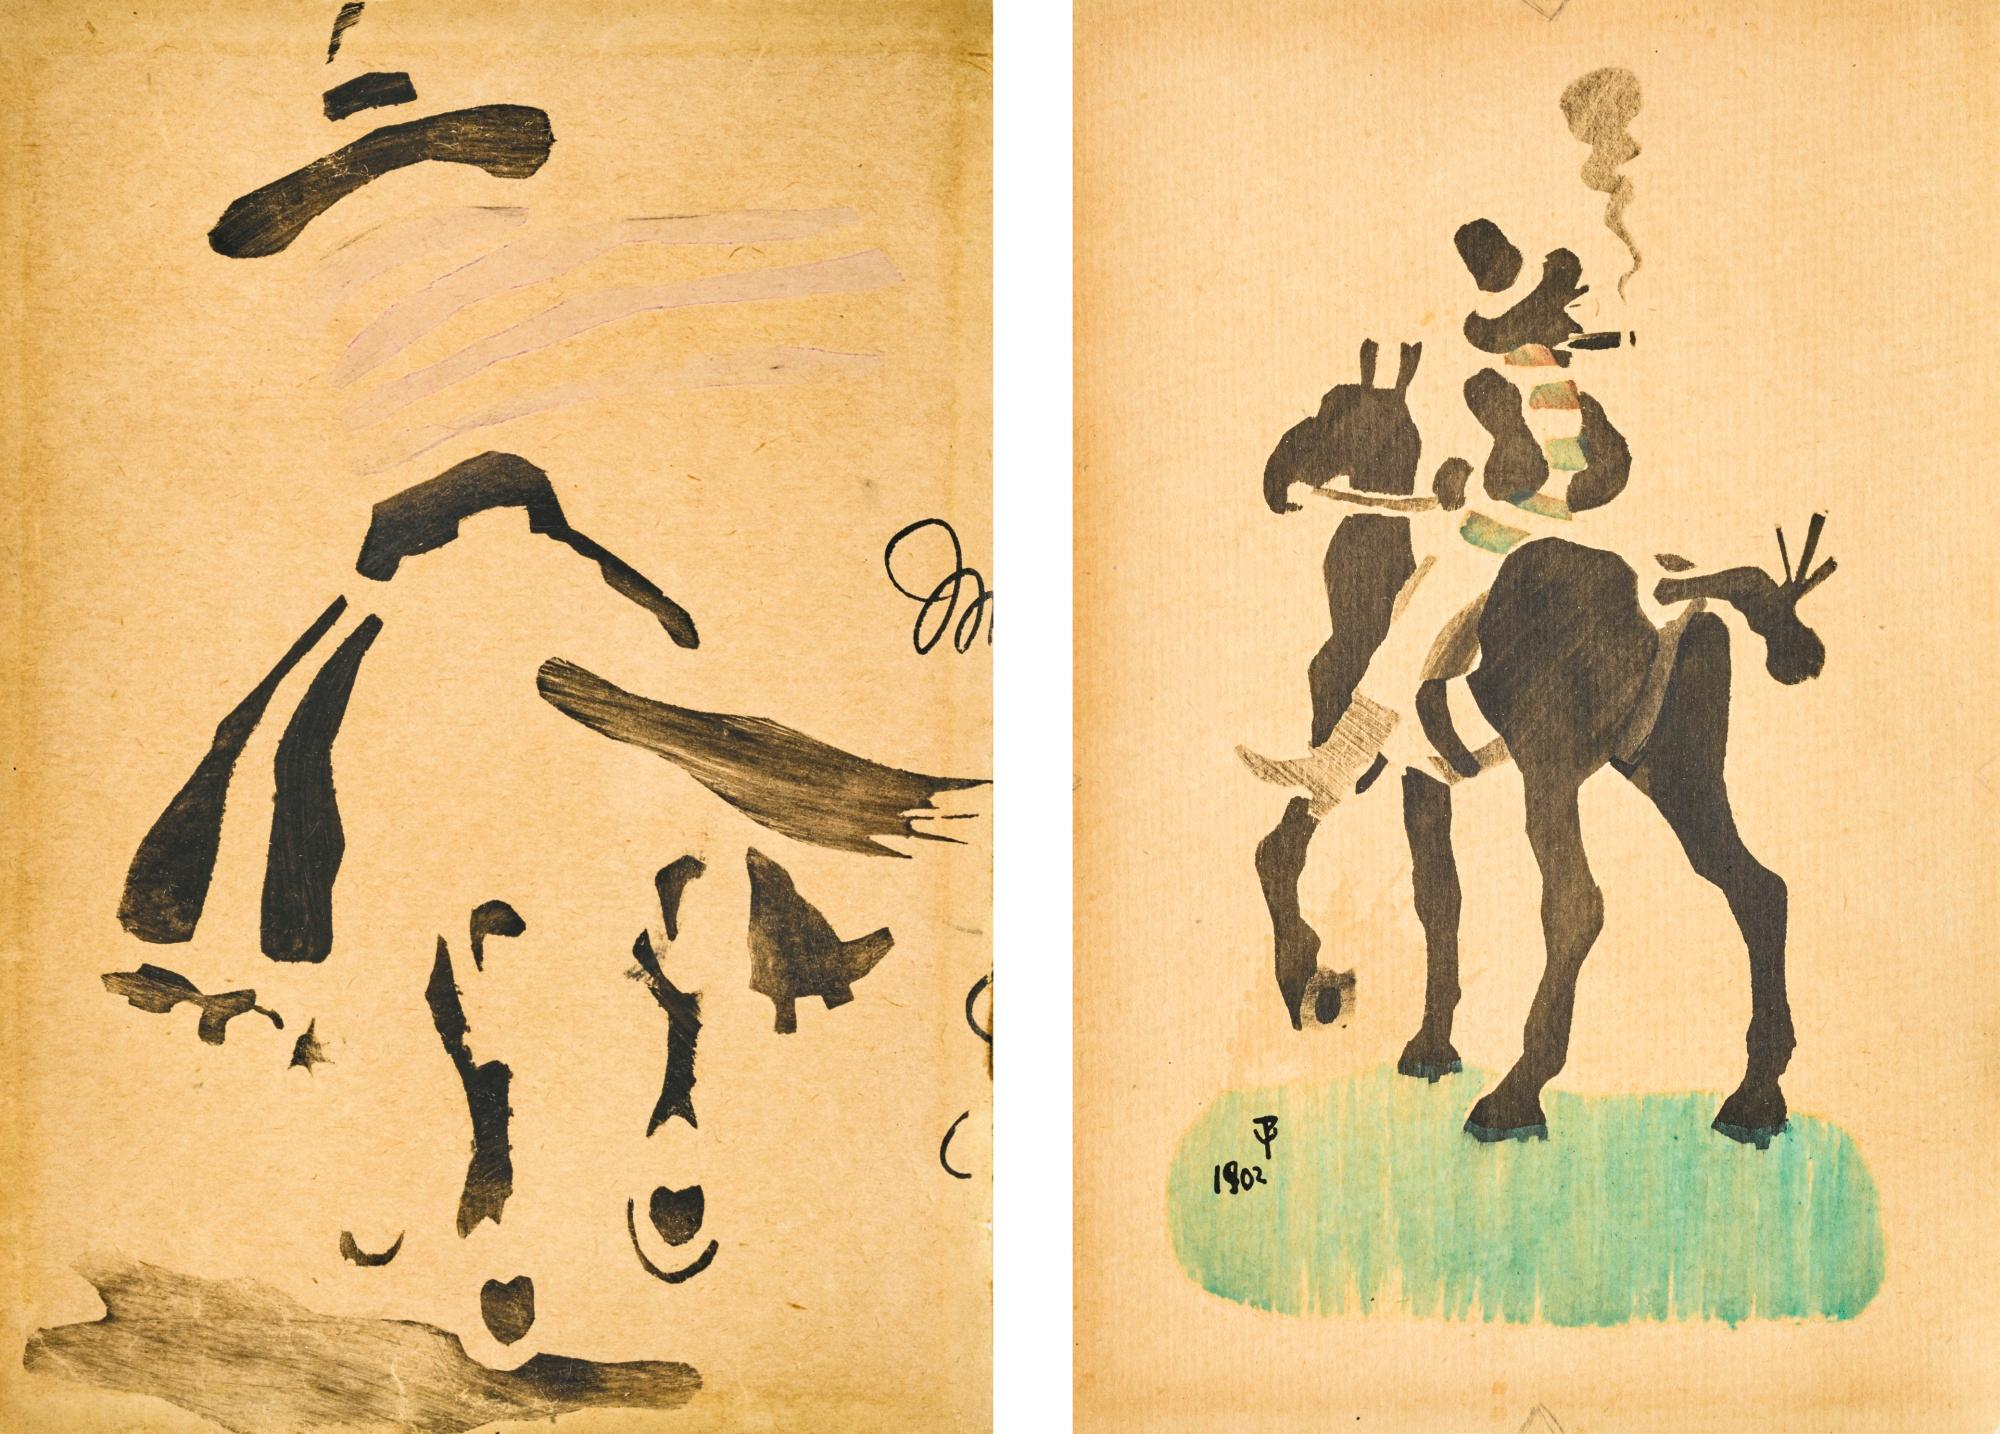 Stencil of a pirate on a horse by Jack Butler Yeats